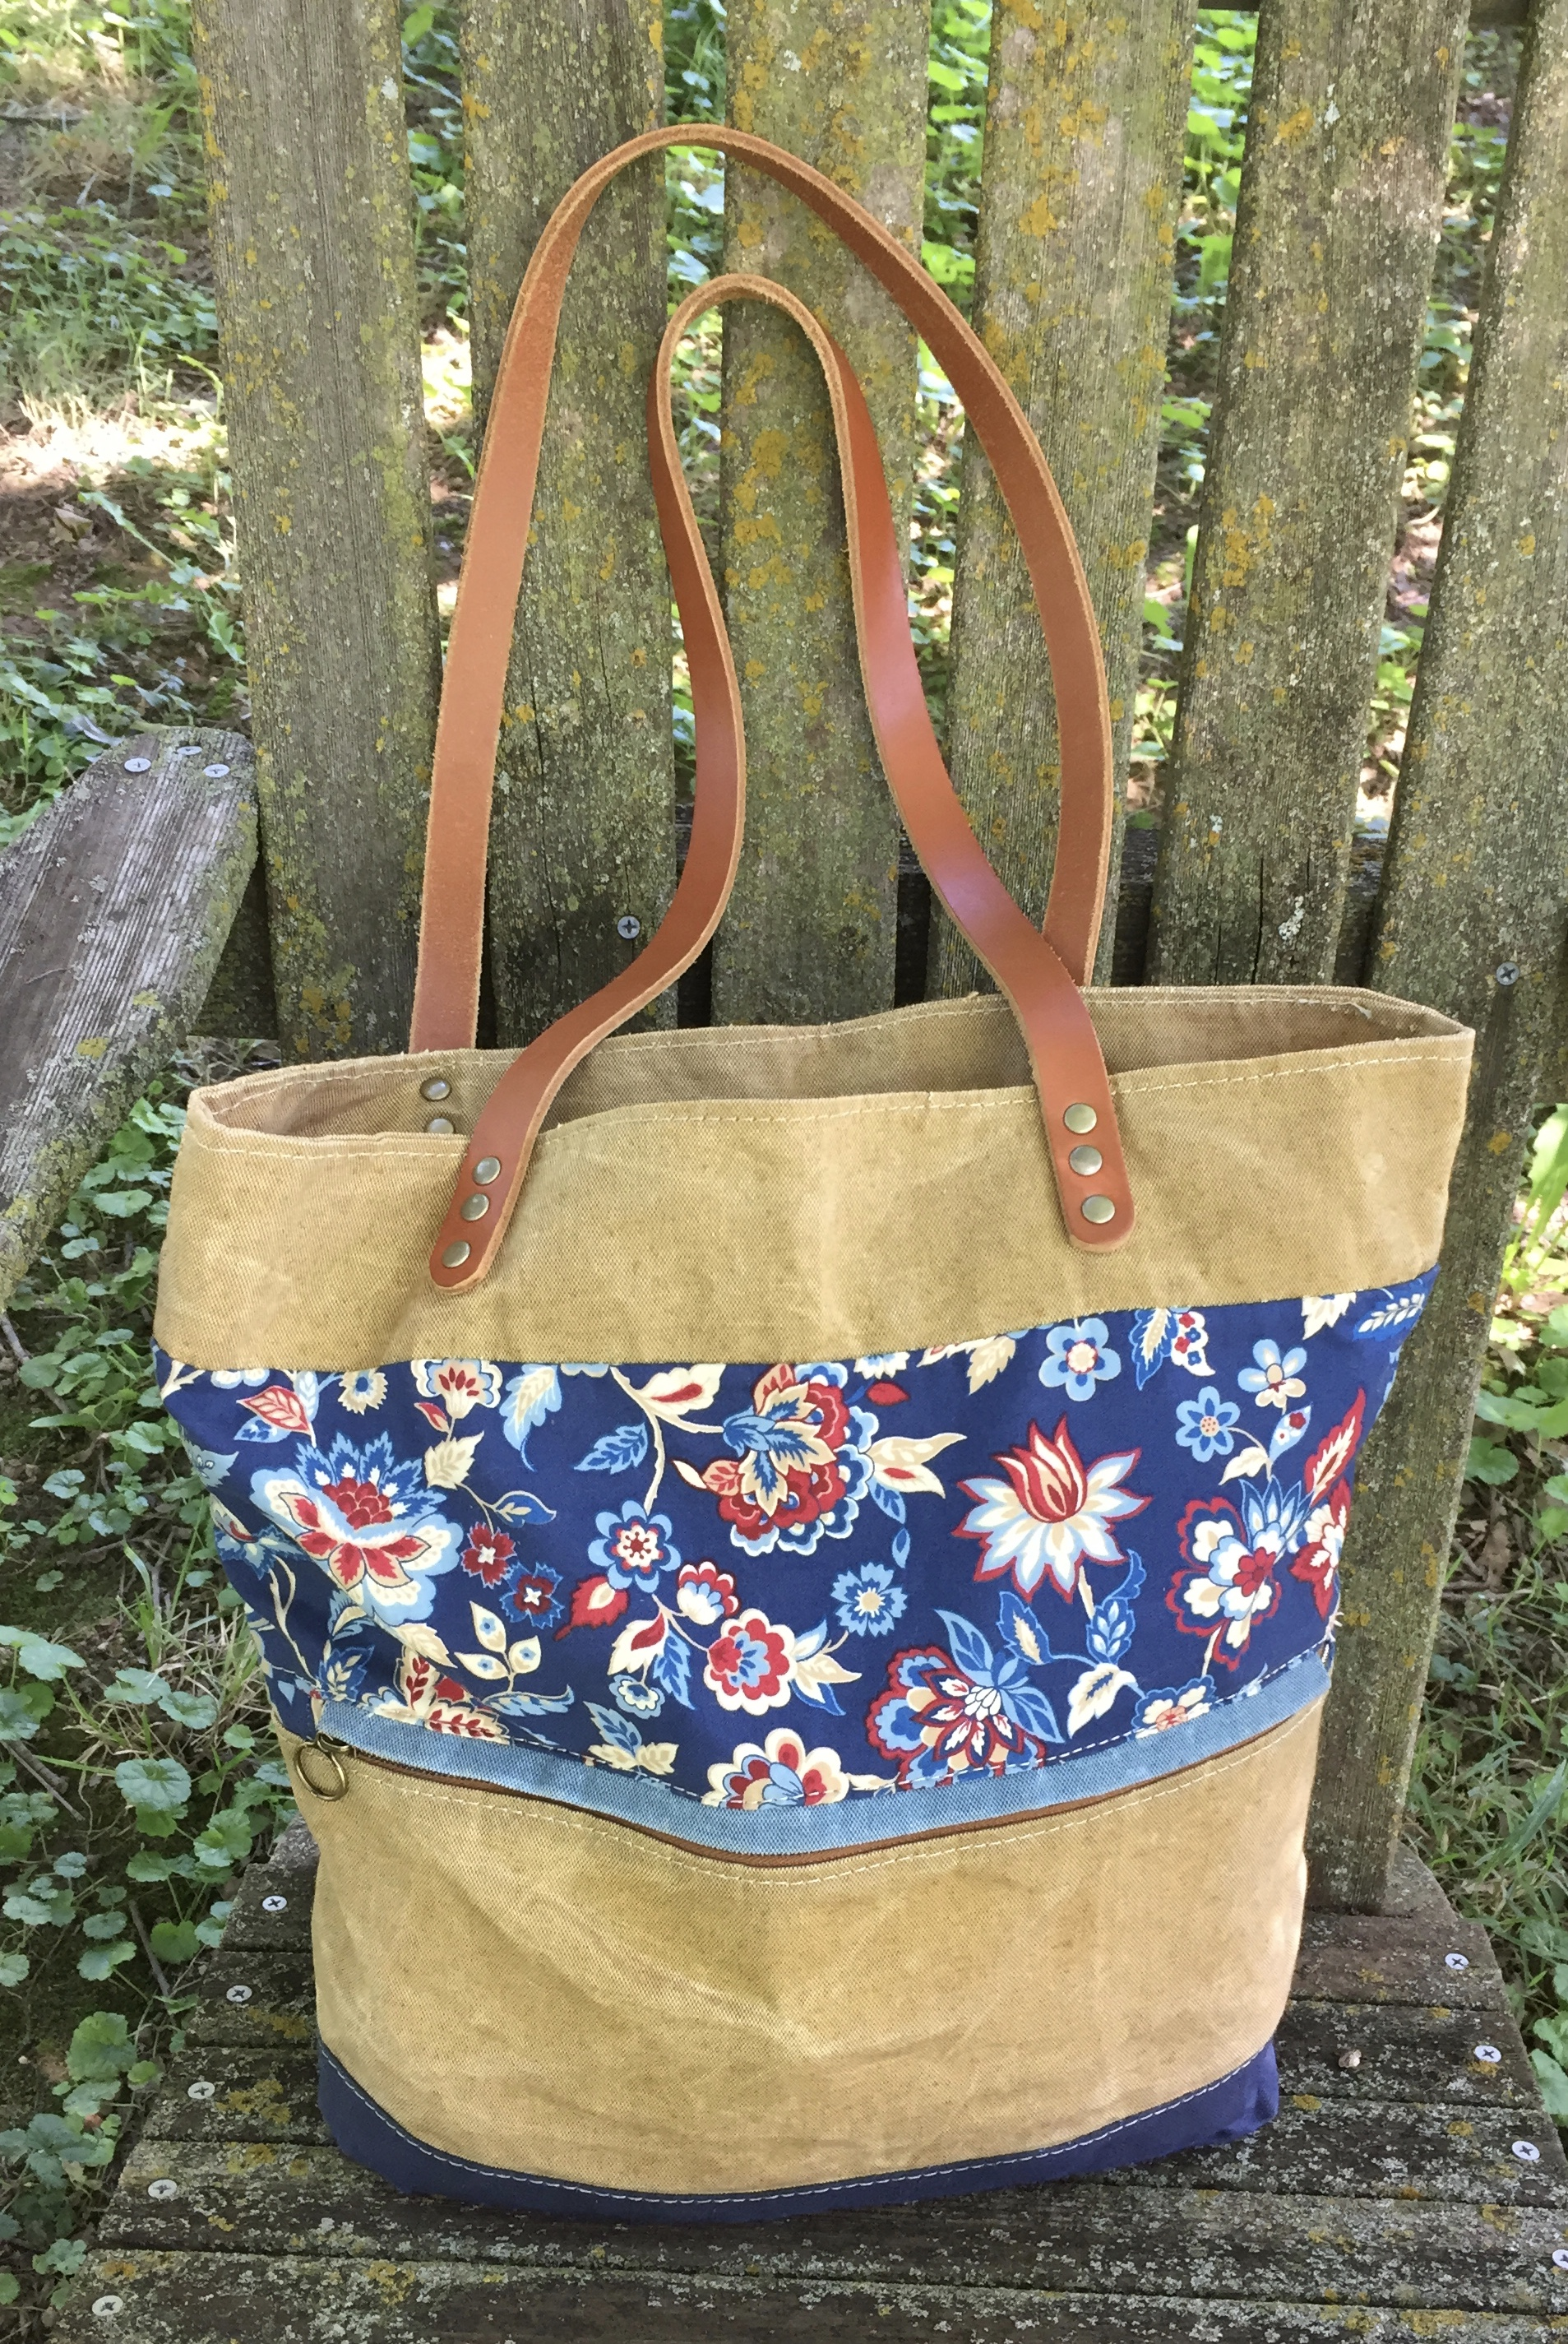 Waterlily Tote - waxed canvas/cotton fabric